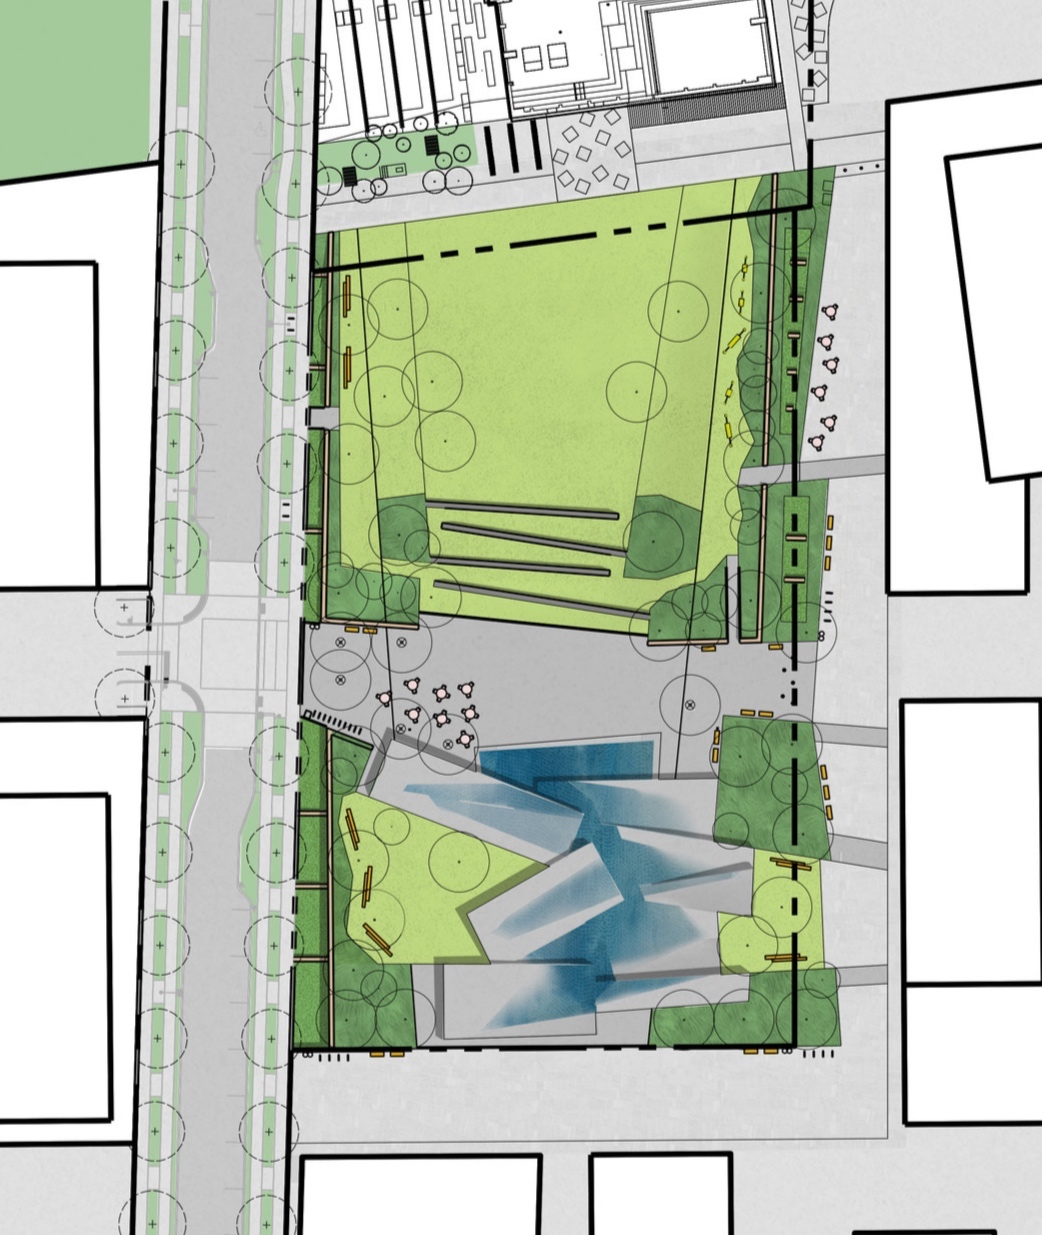 Illustrative site plan of the Plaza by Gustafson Guthrie Nichol (GGN), May 2019.